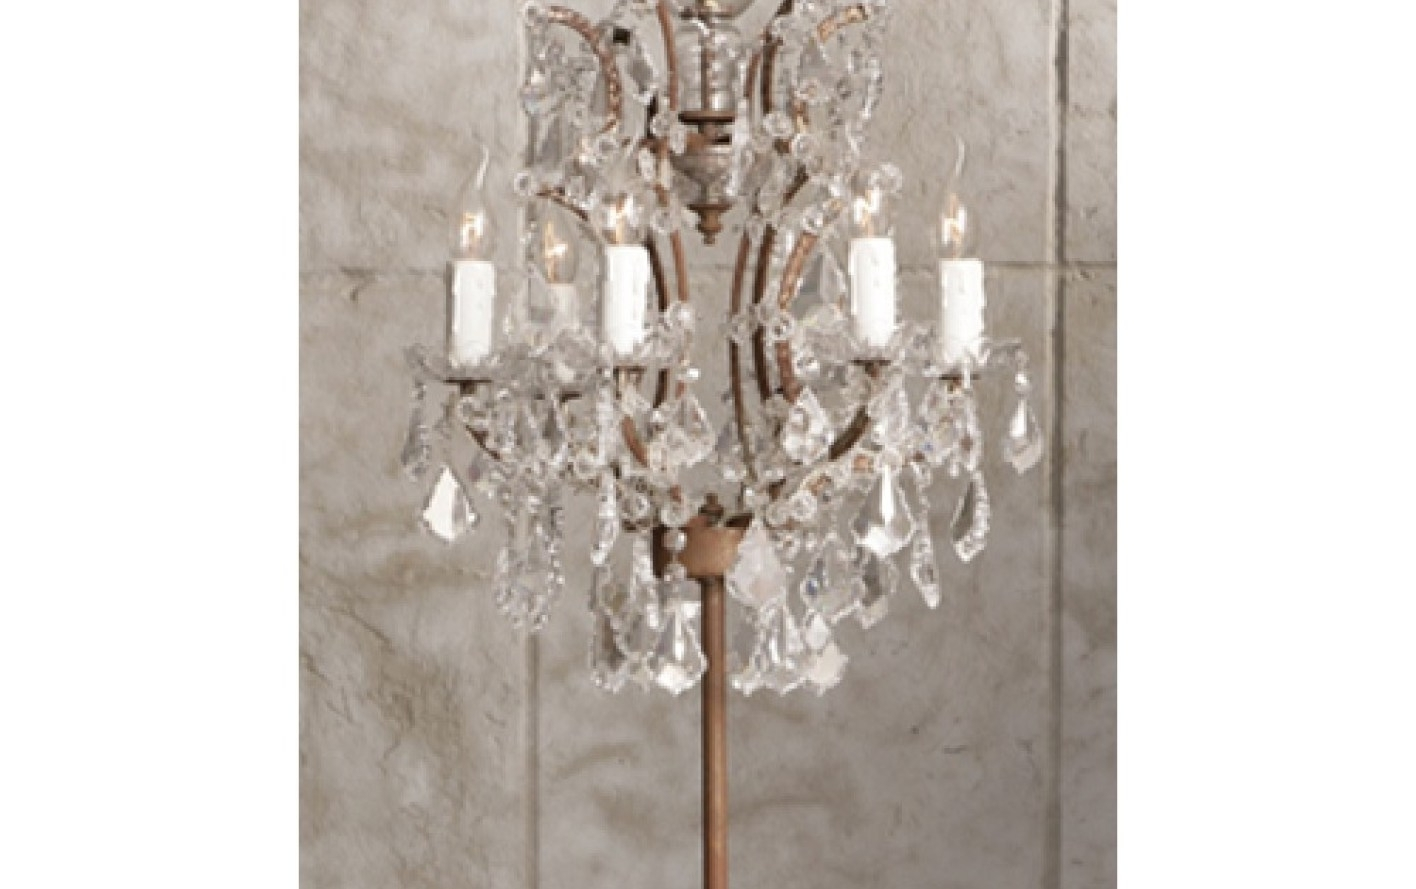 Well Known Small Crystal Chandelier Table Lamps For Chandelier : Xstunning Crystal Chandelier Table Lamp Suppliers (View 5 of 20)